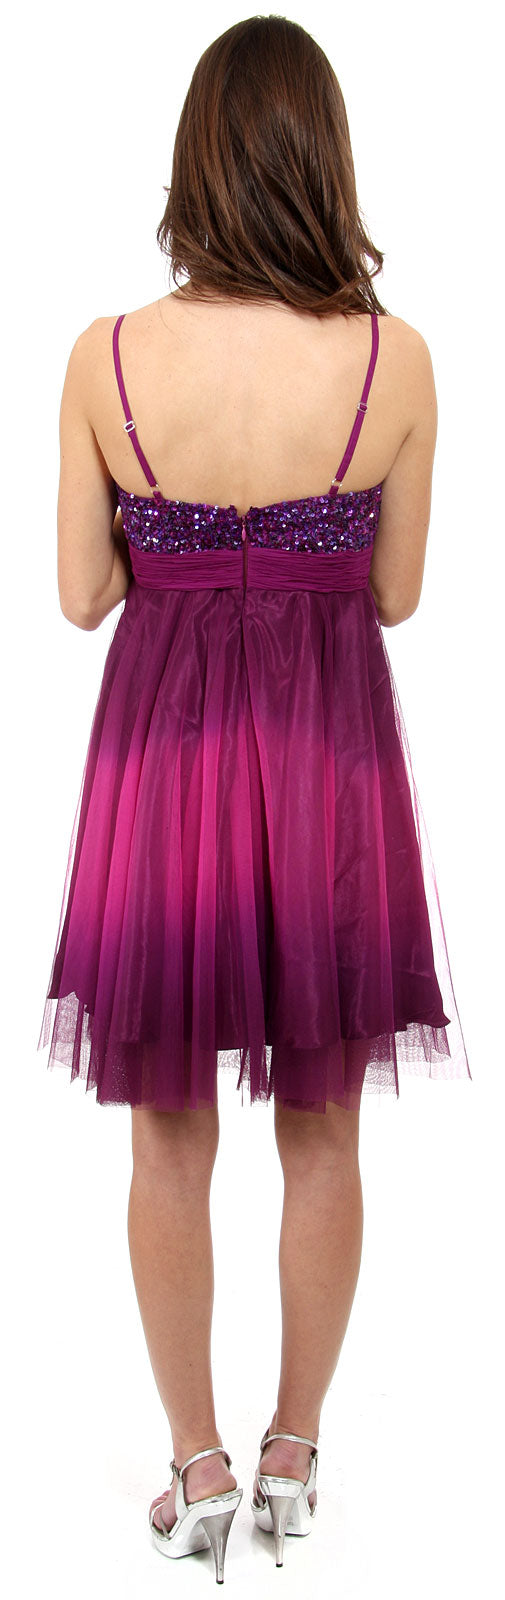 Image of Spaghetti Straps 2 Tone Beaded Bust Short Formal Party Dress back in Purple